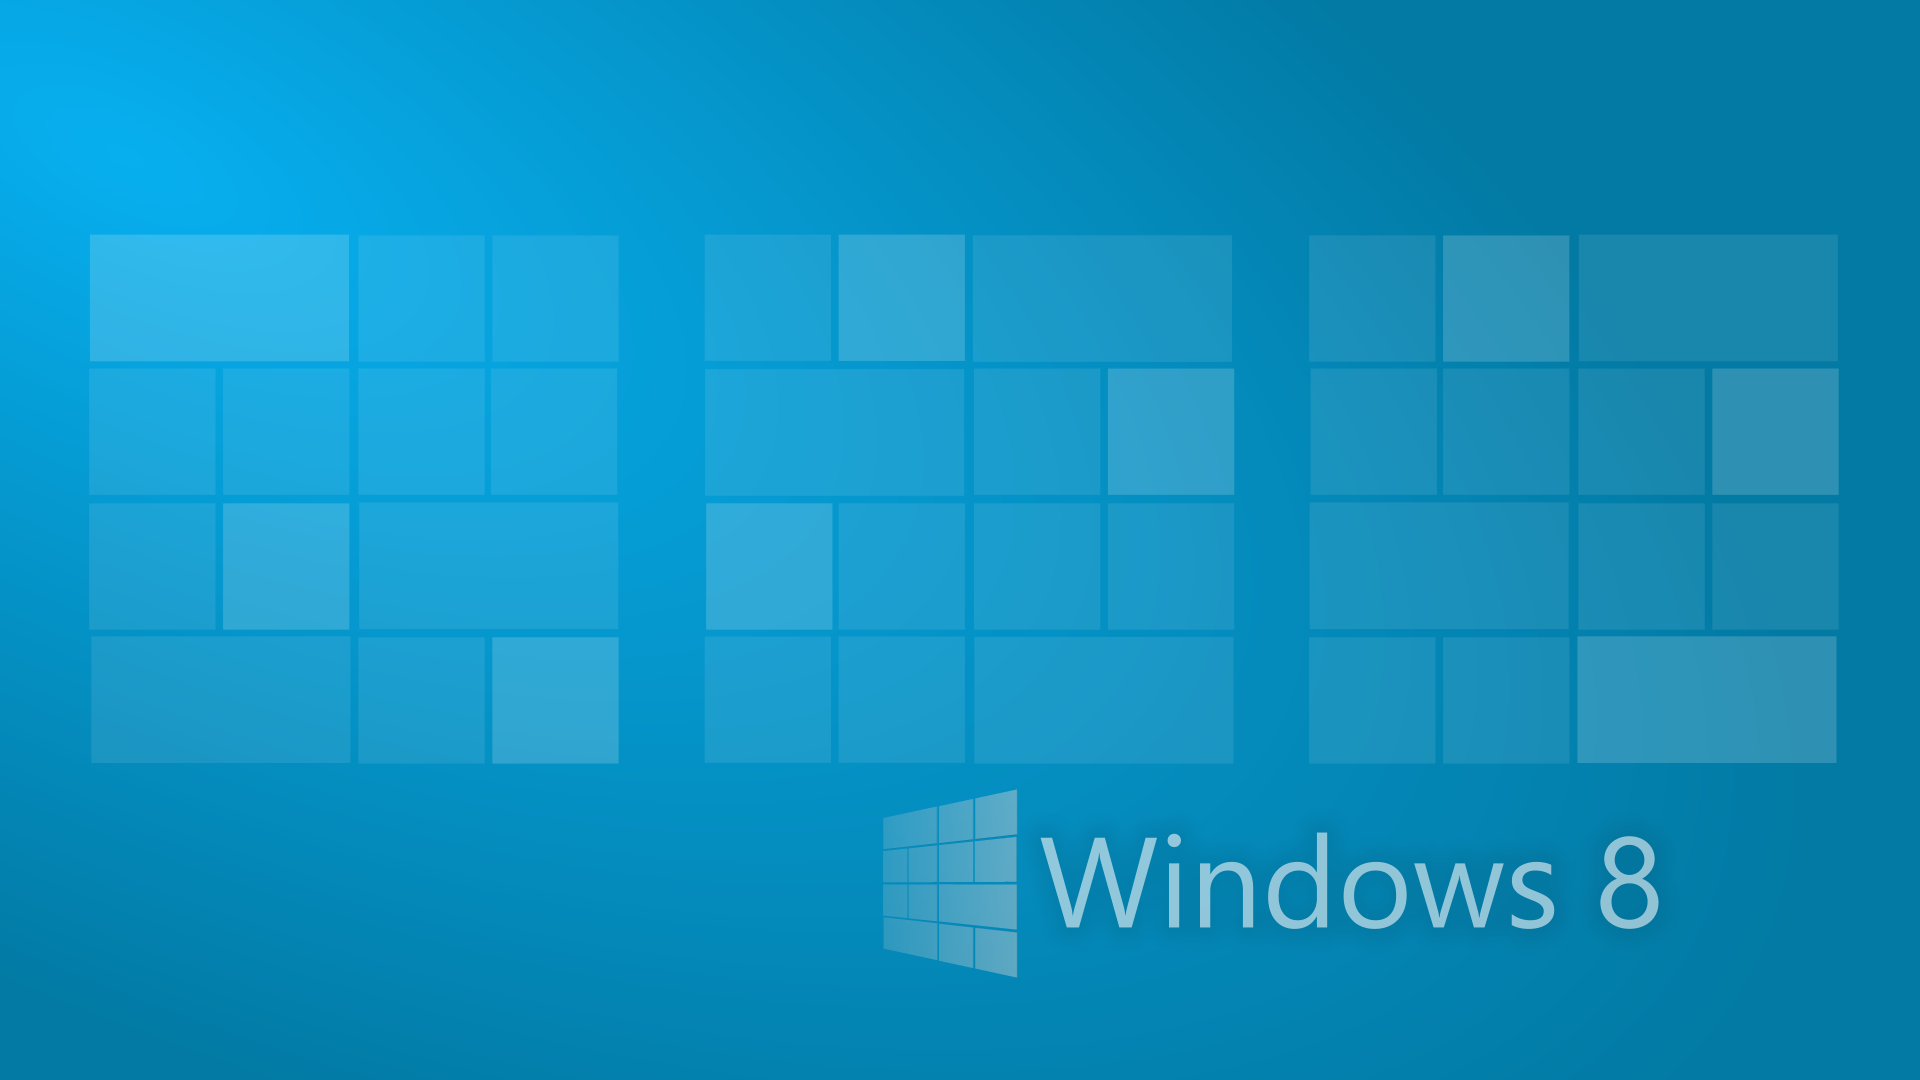 windows 8 full hd wallpaper and background image | 1920x1080 | id:461380